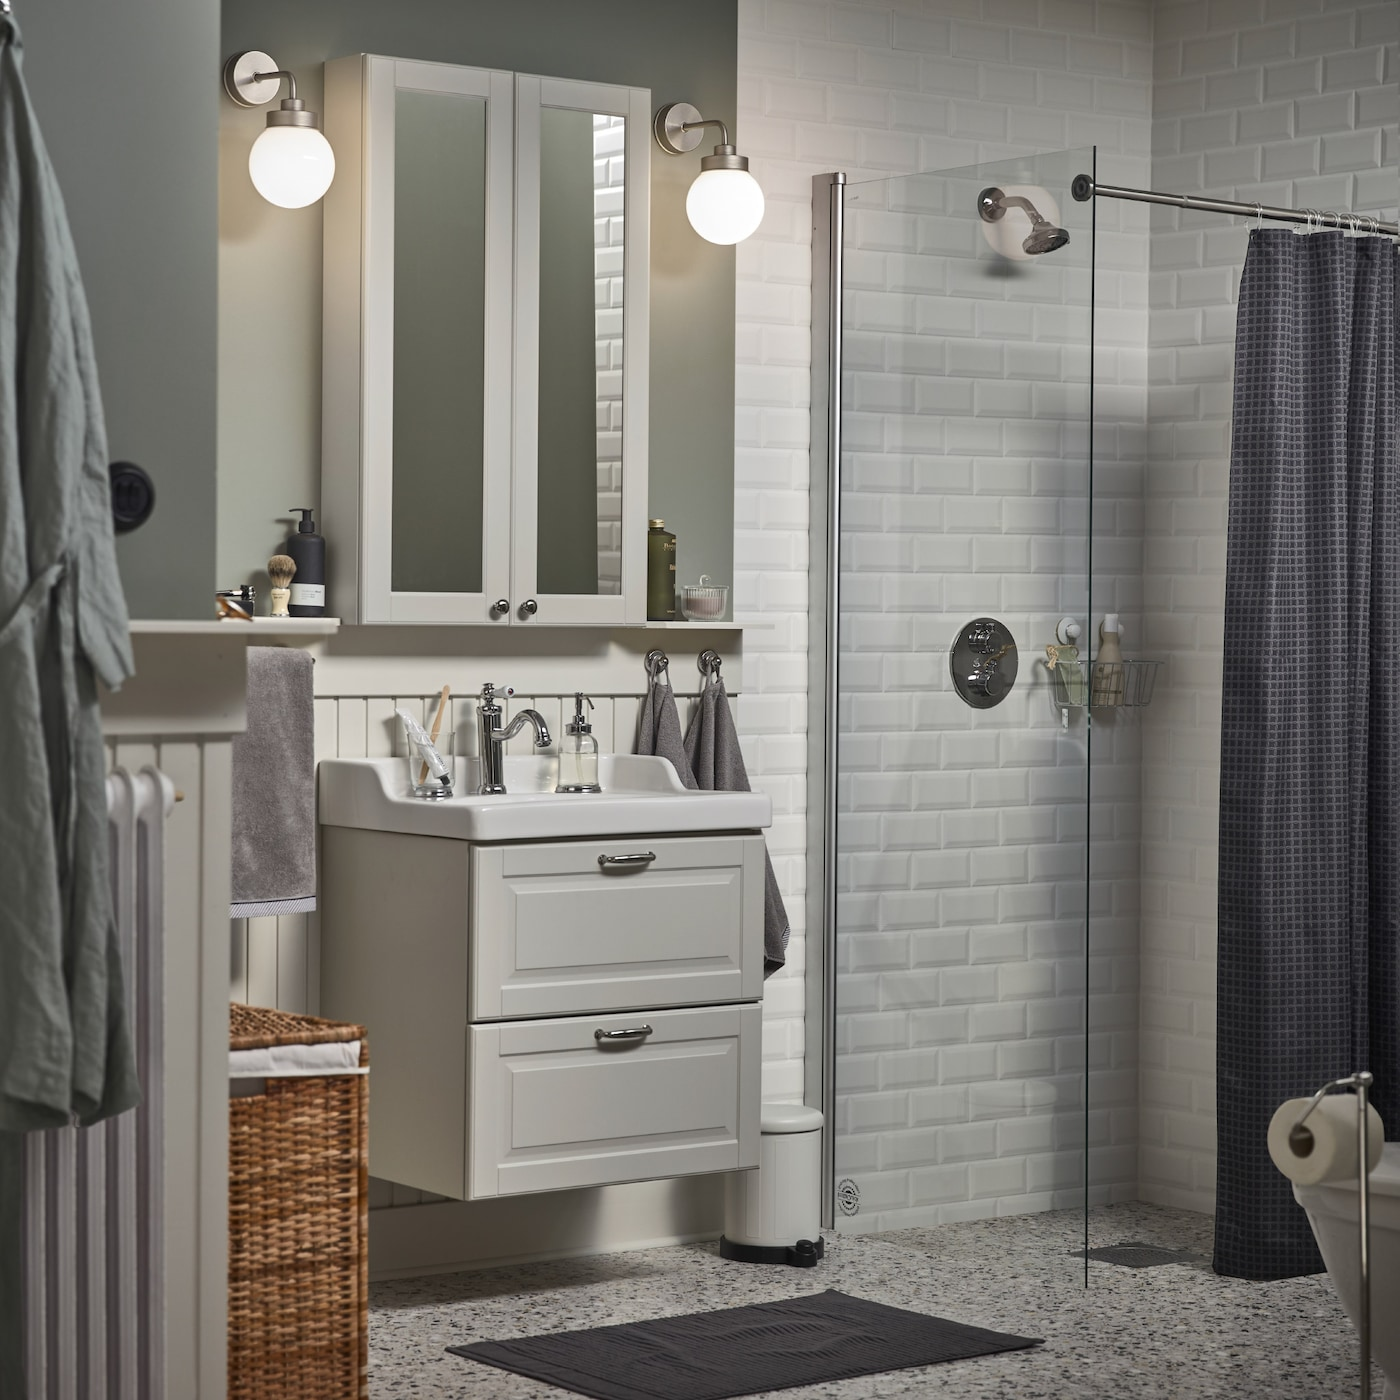 A small bathroom with a white mirror cabinet, a grey wash-stand, a dark grey bath mat and a shower curtain in anthracite.